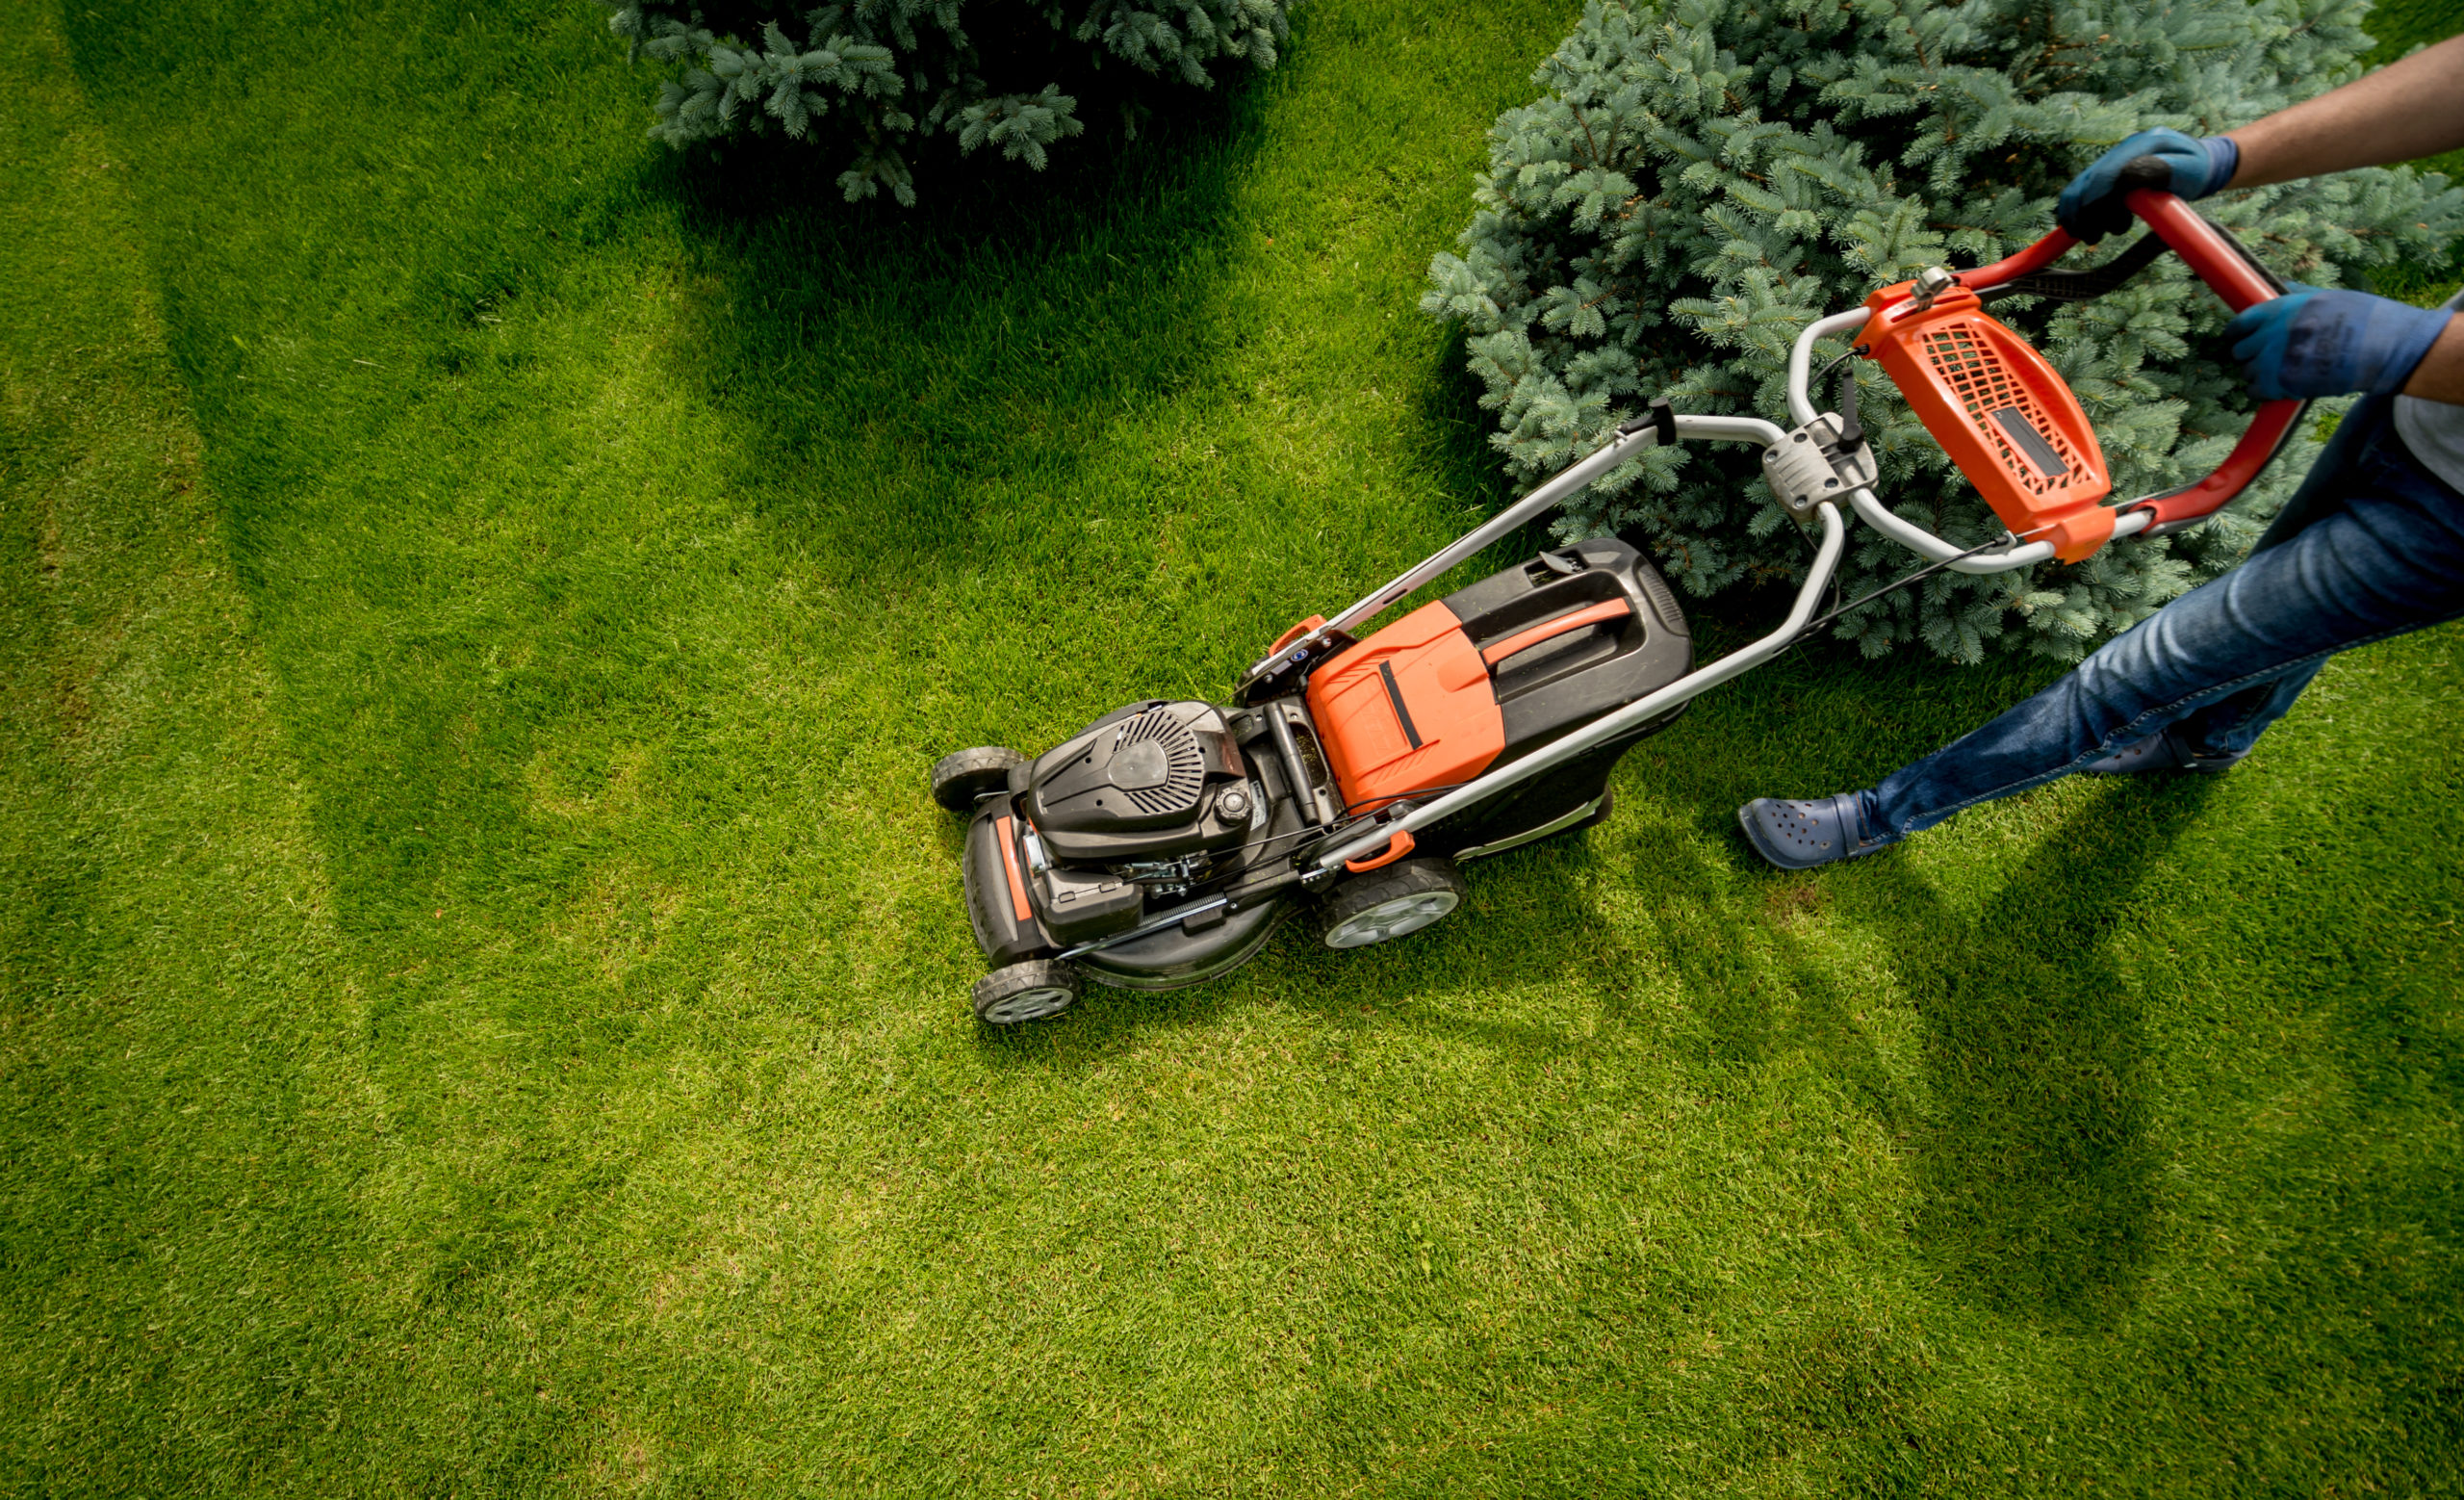 How to Mow a Lawn Professionally? | Grass Cutting Techniques